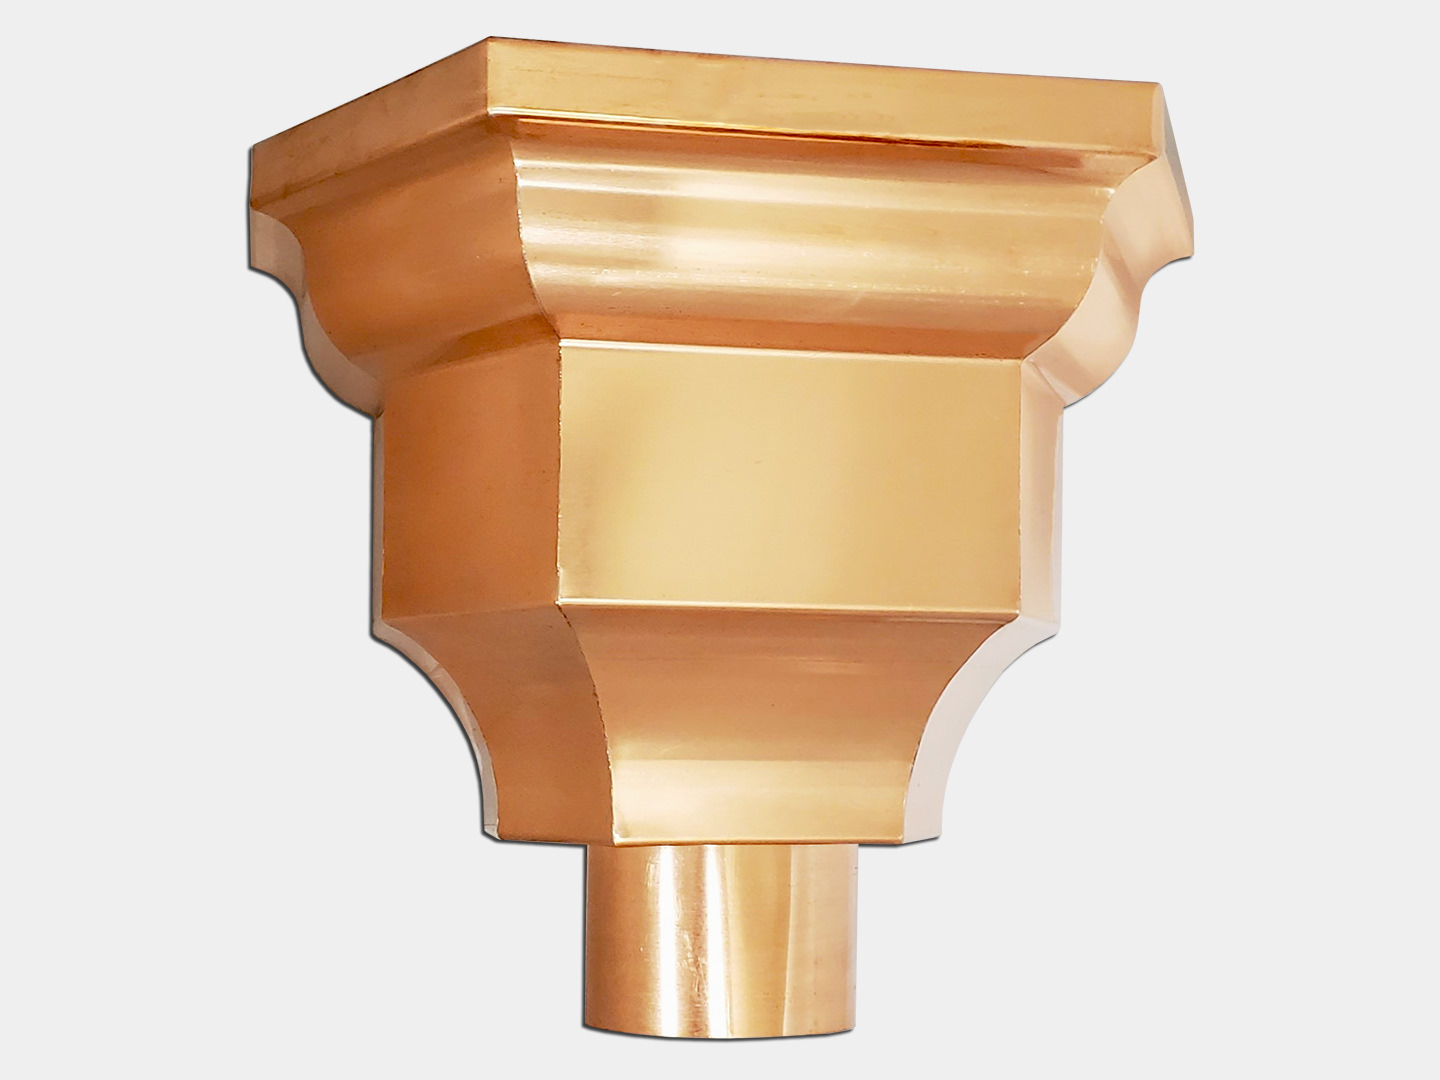 Traditional: The Excalibur Copper Conductor Head / Leader Head